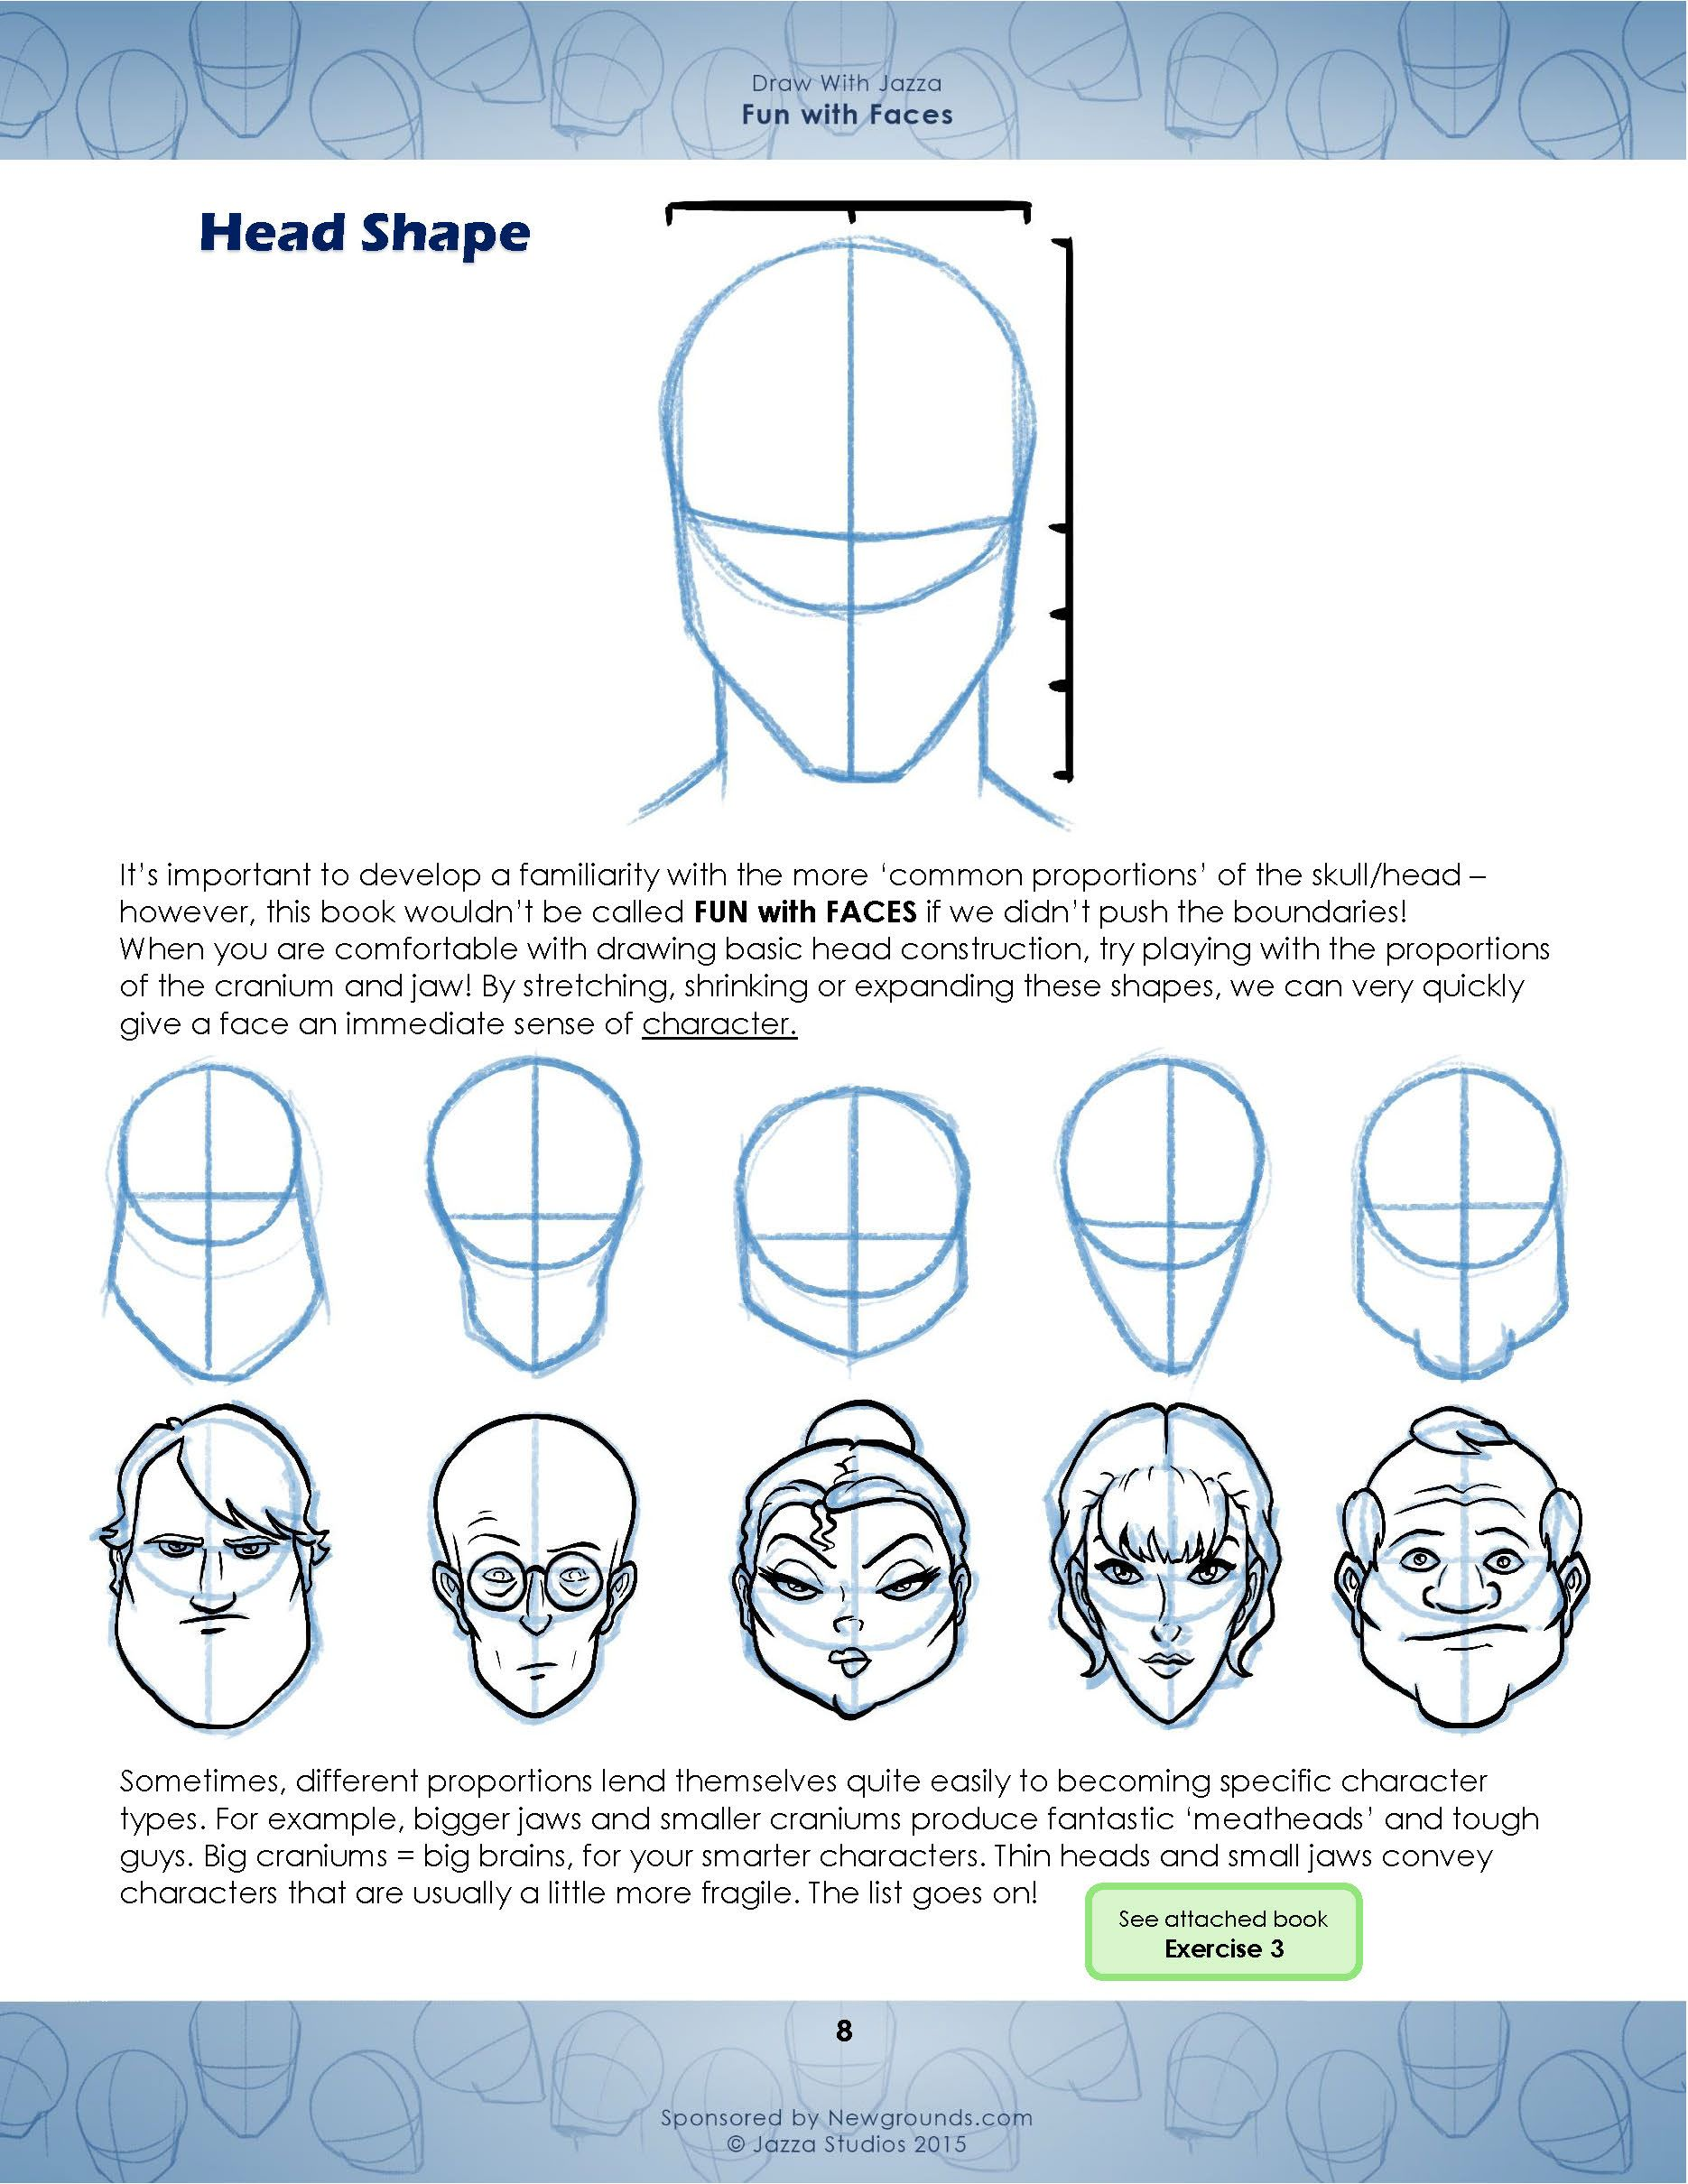 Cartooning Ultimate Character Design Book Pdf : Best draw with jazza ideas on pinterest adobe flash